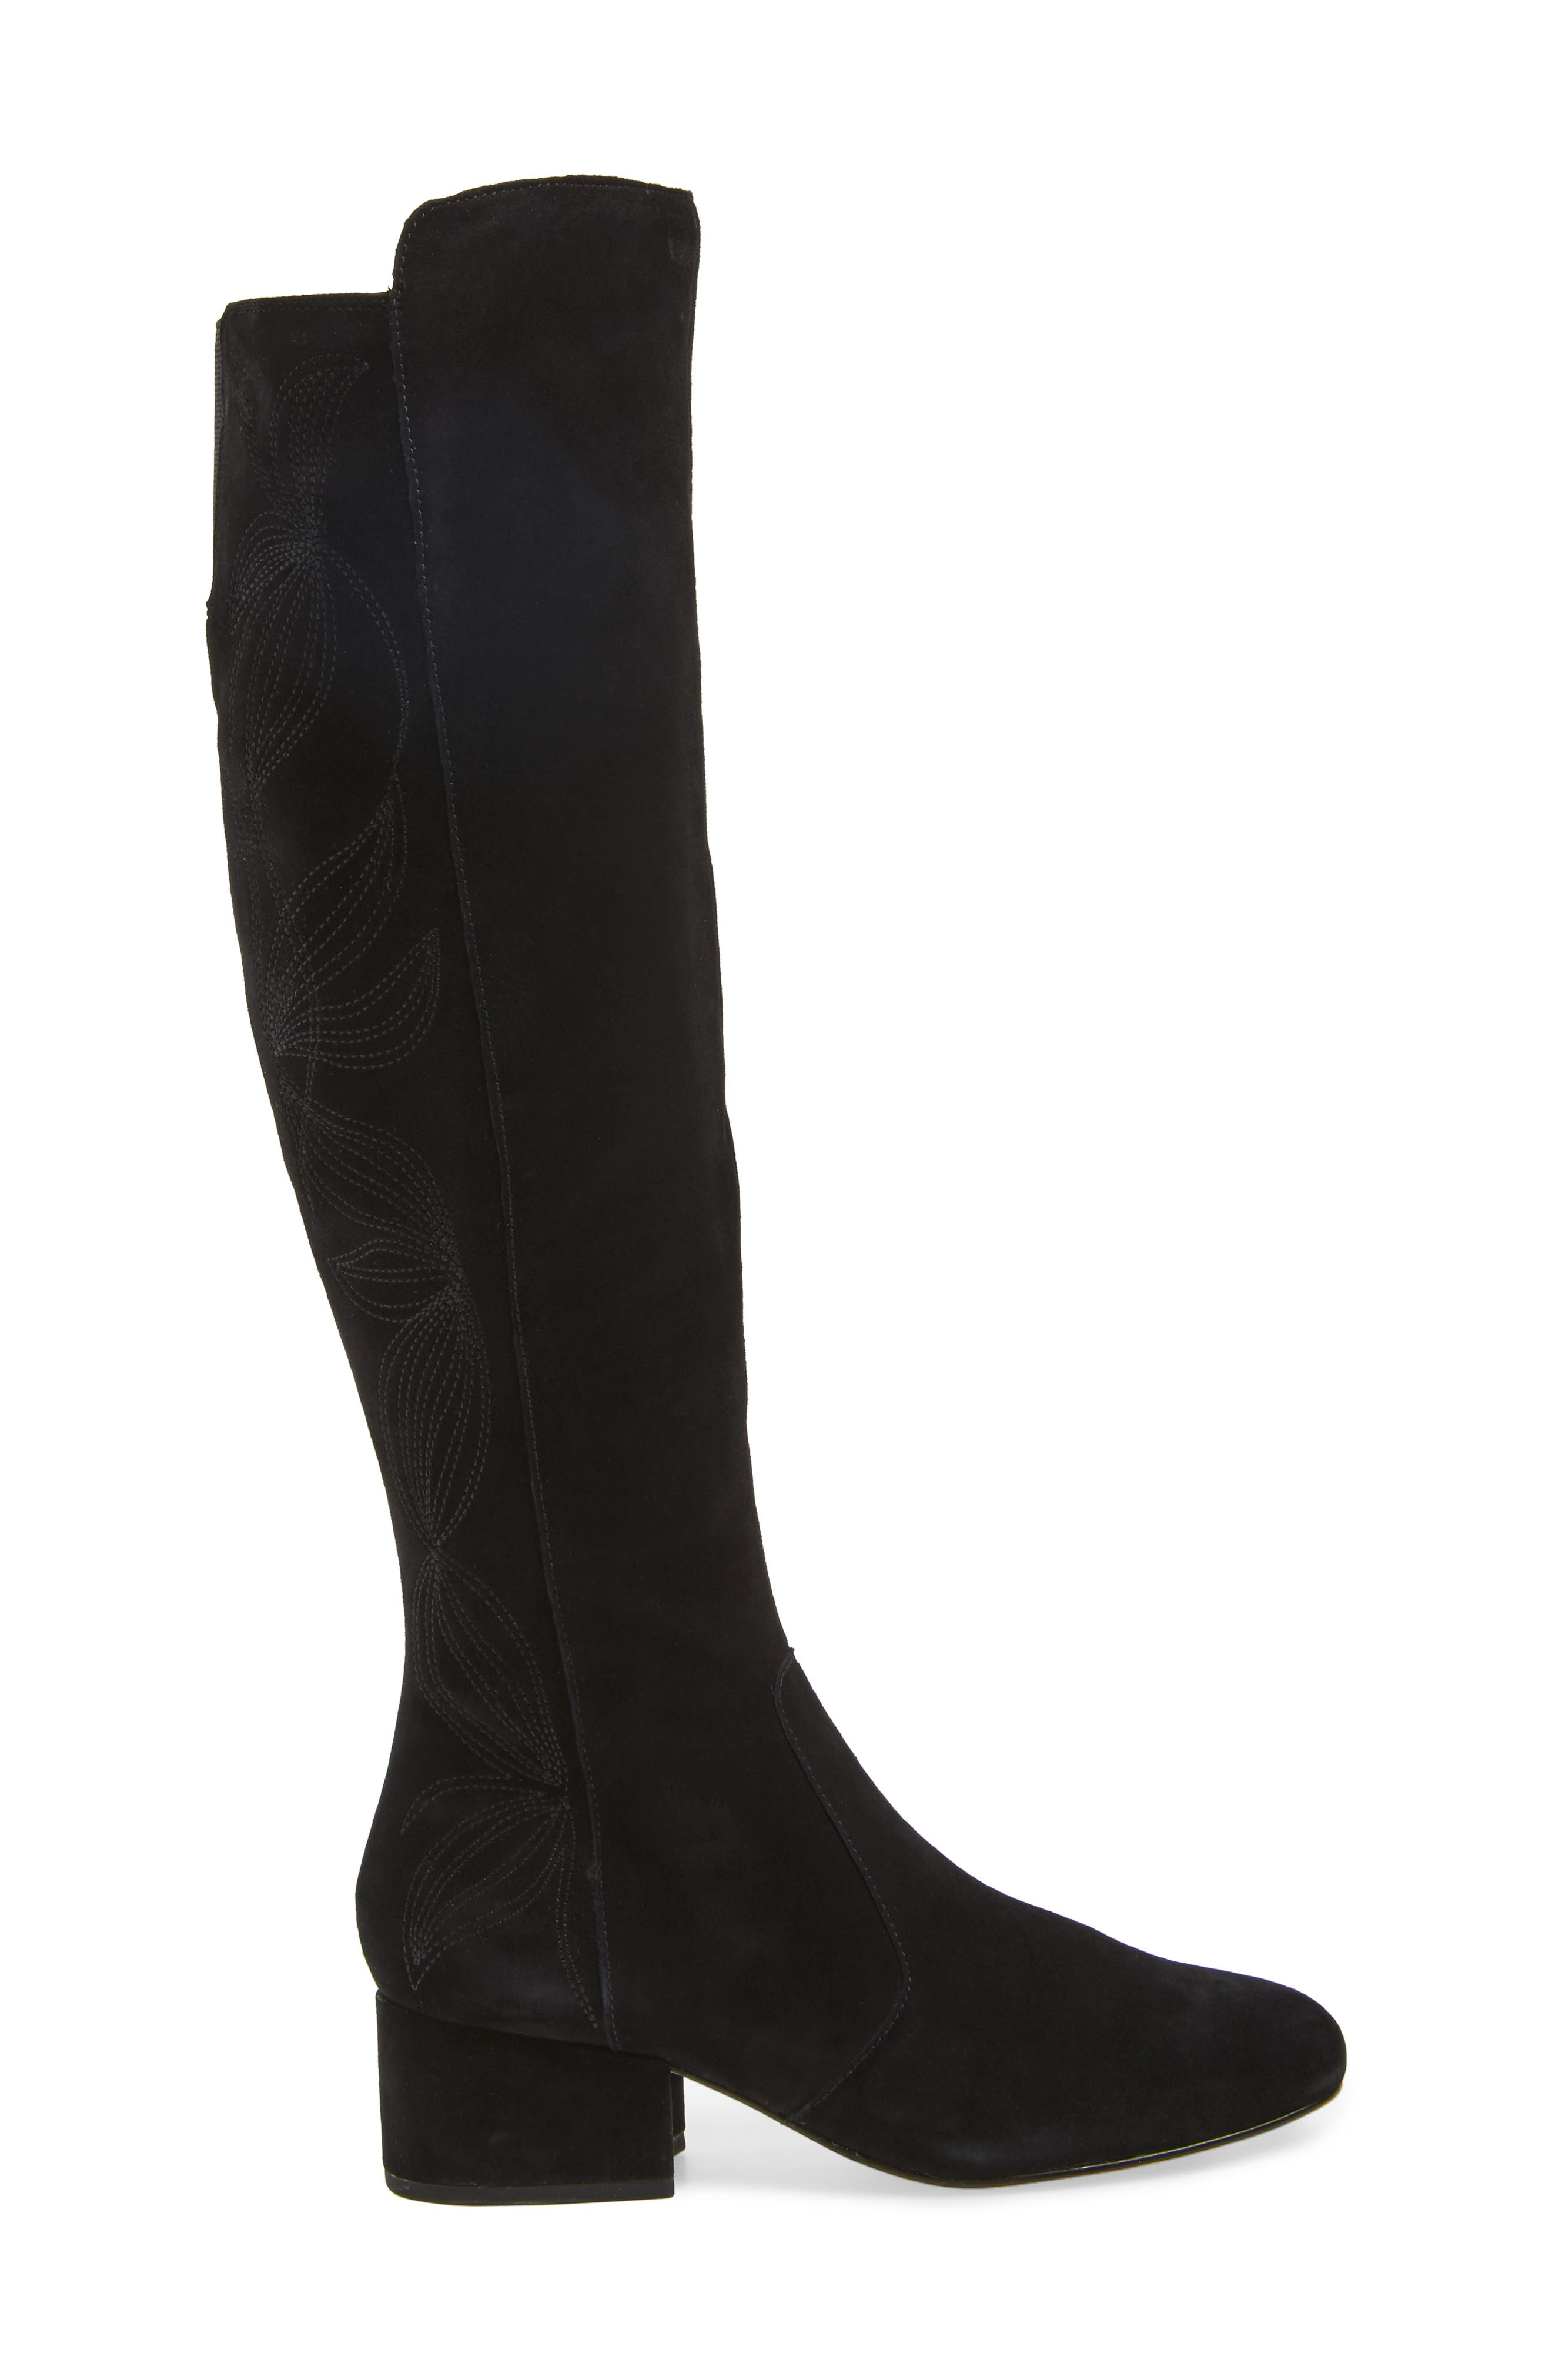 Tawnna Knee High Boot,                             Alternate thumbnail 3, color,                             Black Suede